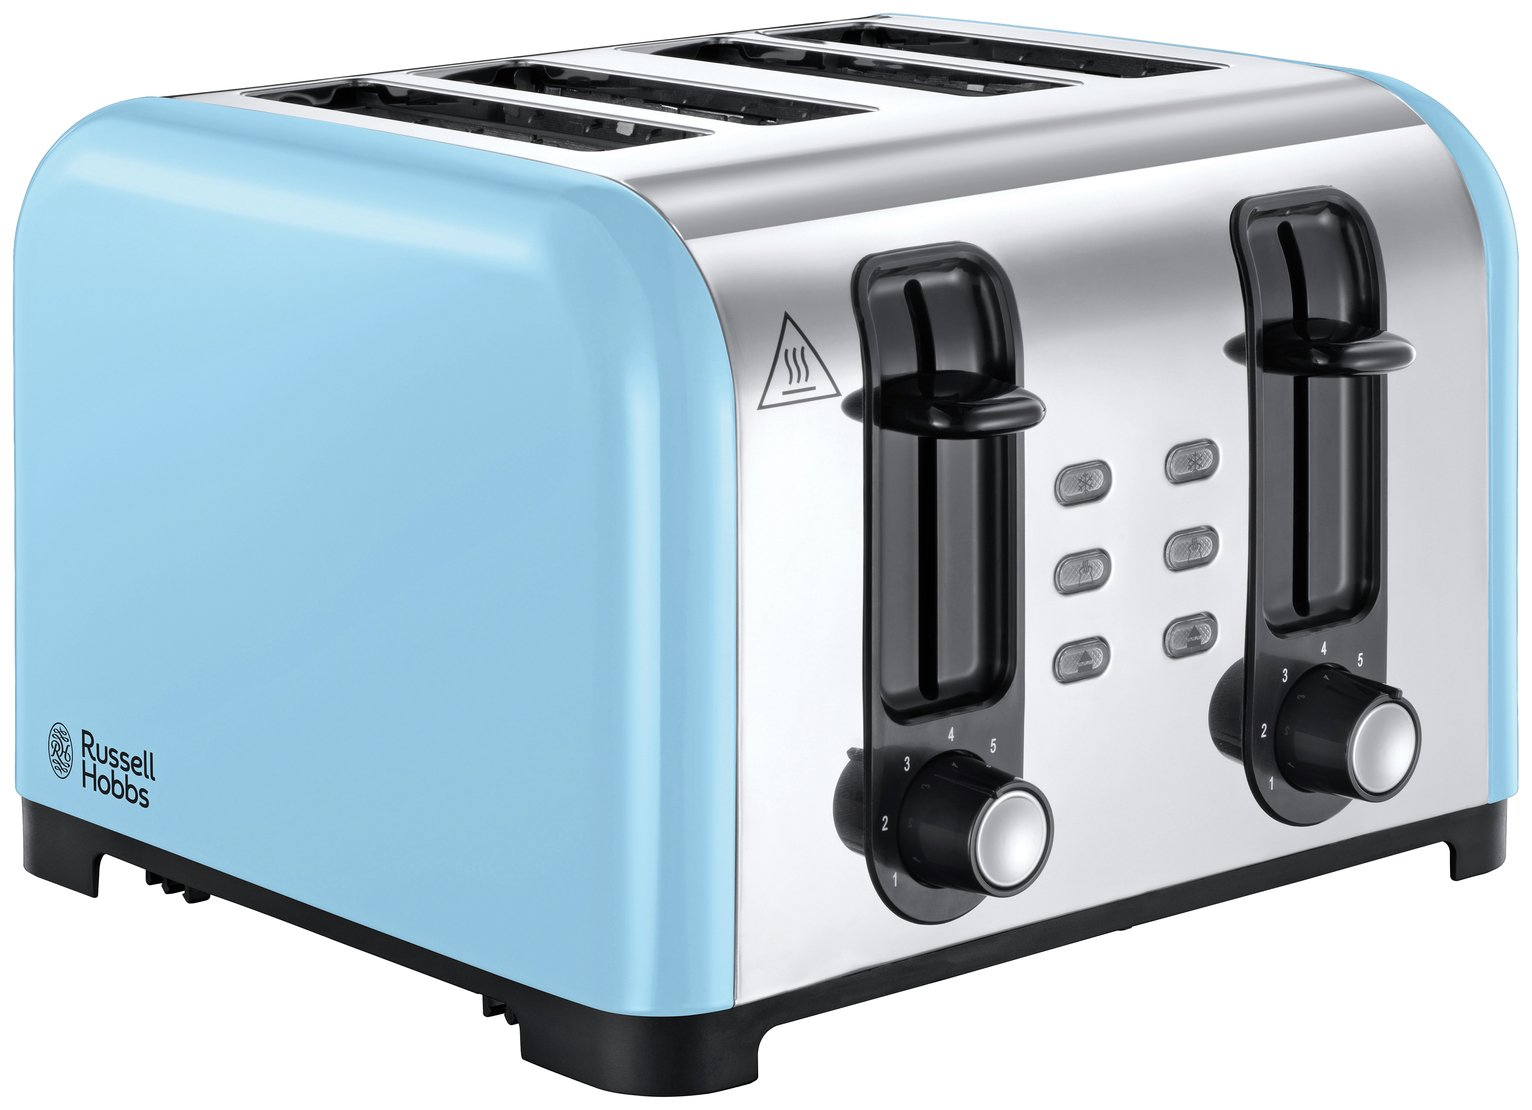 Russell Hobbs Oslo Toaster - Blue